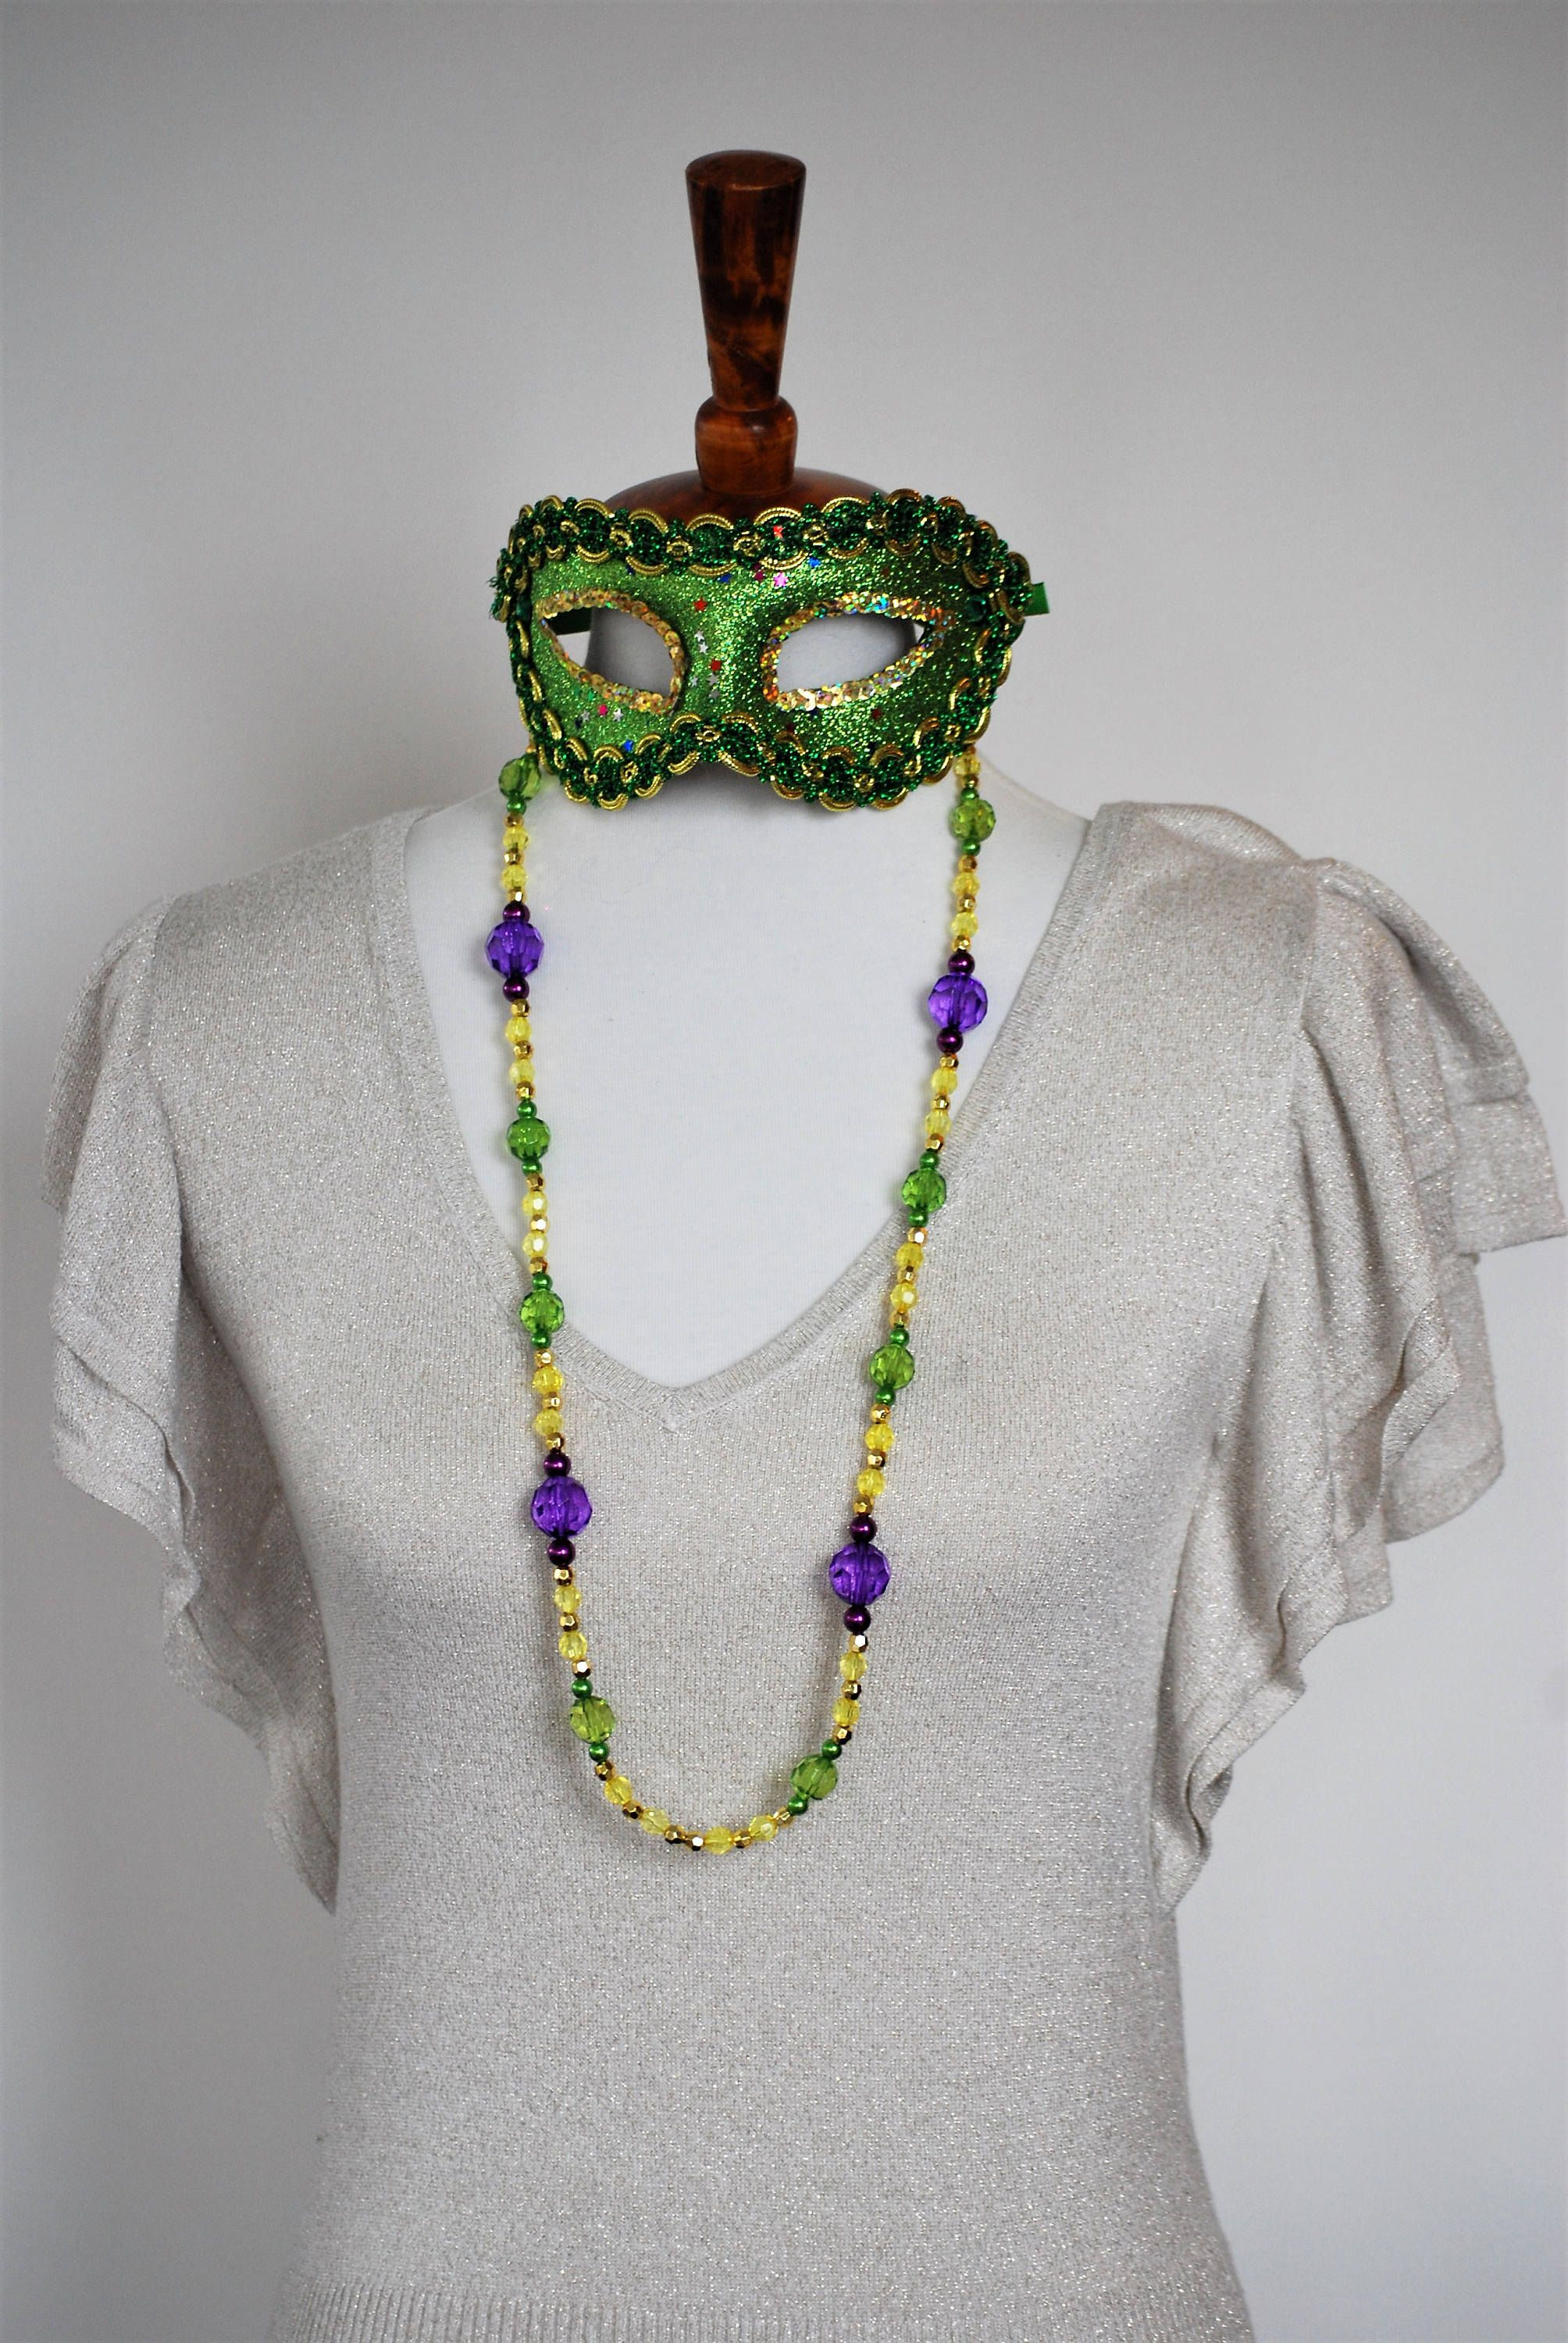 reuse article new beads to image carnival causes throws orleans life gras take bead these entertainment mardi overload worthy